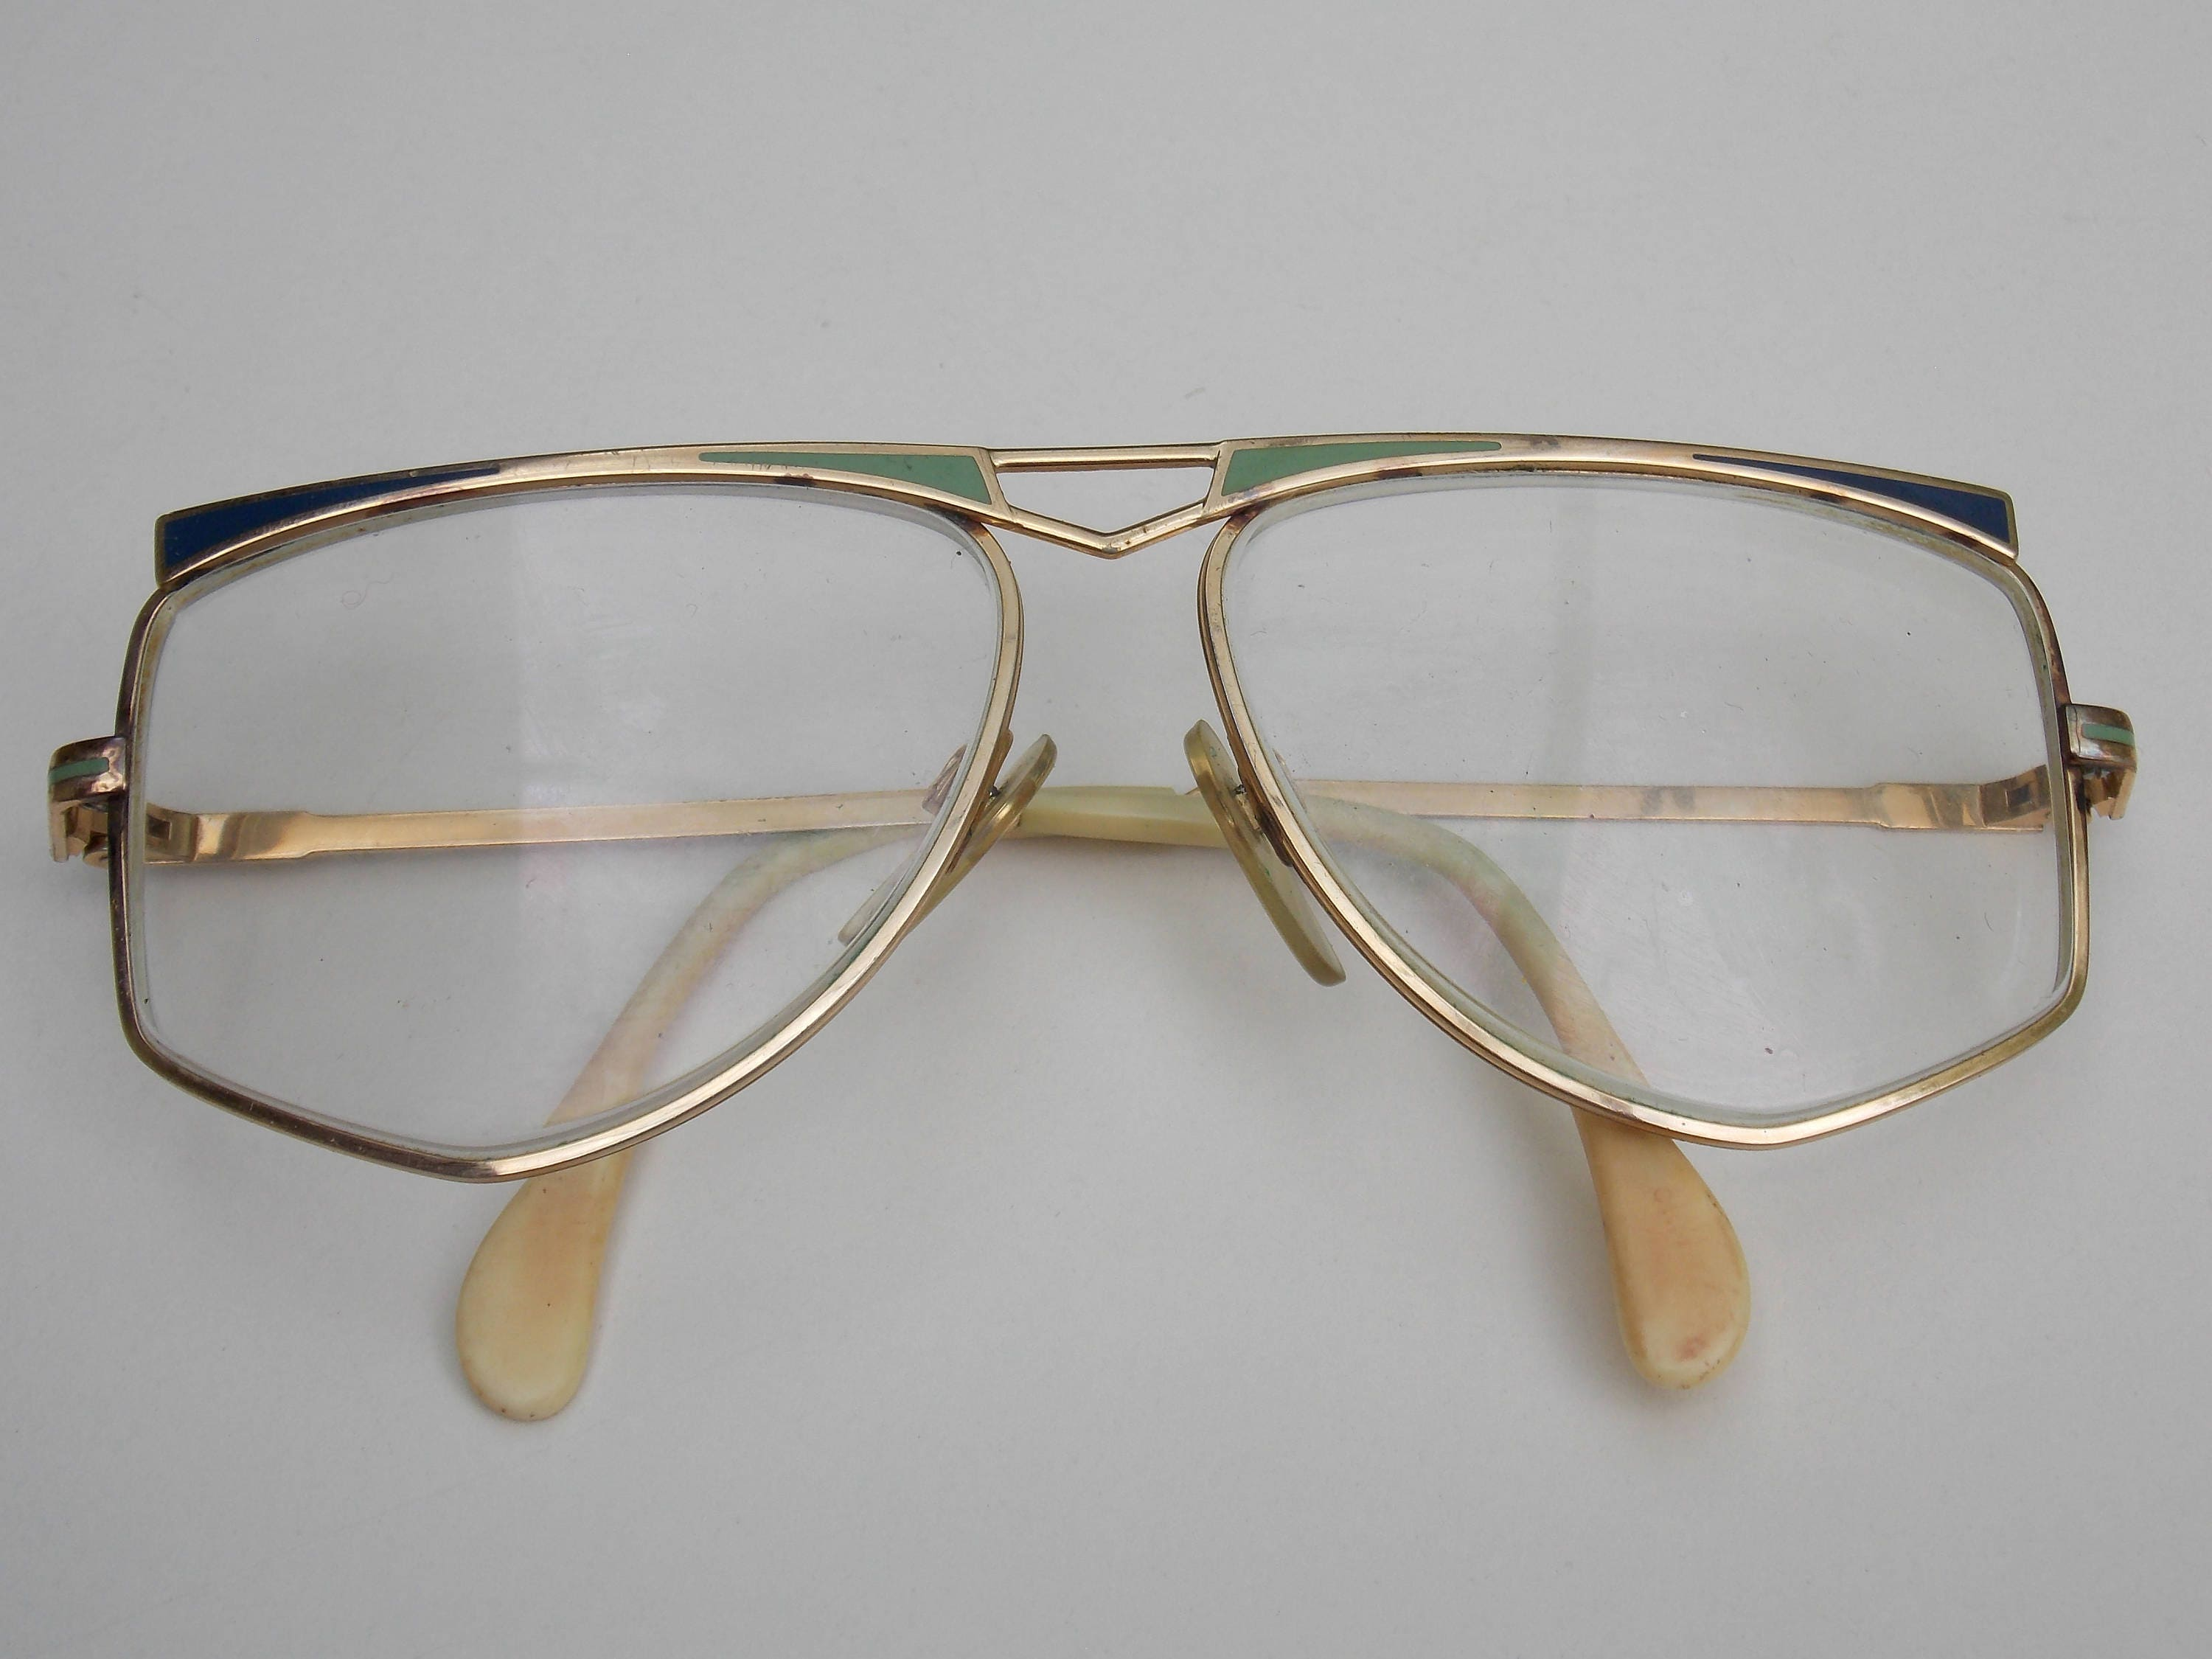 dd00fc21b5 Cool retro glasses gold frame clear lens large lens metal